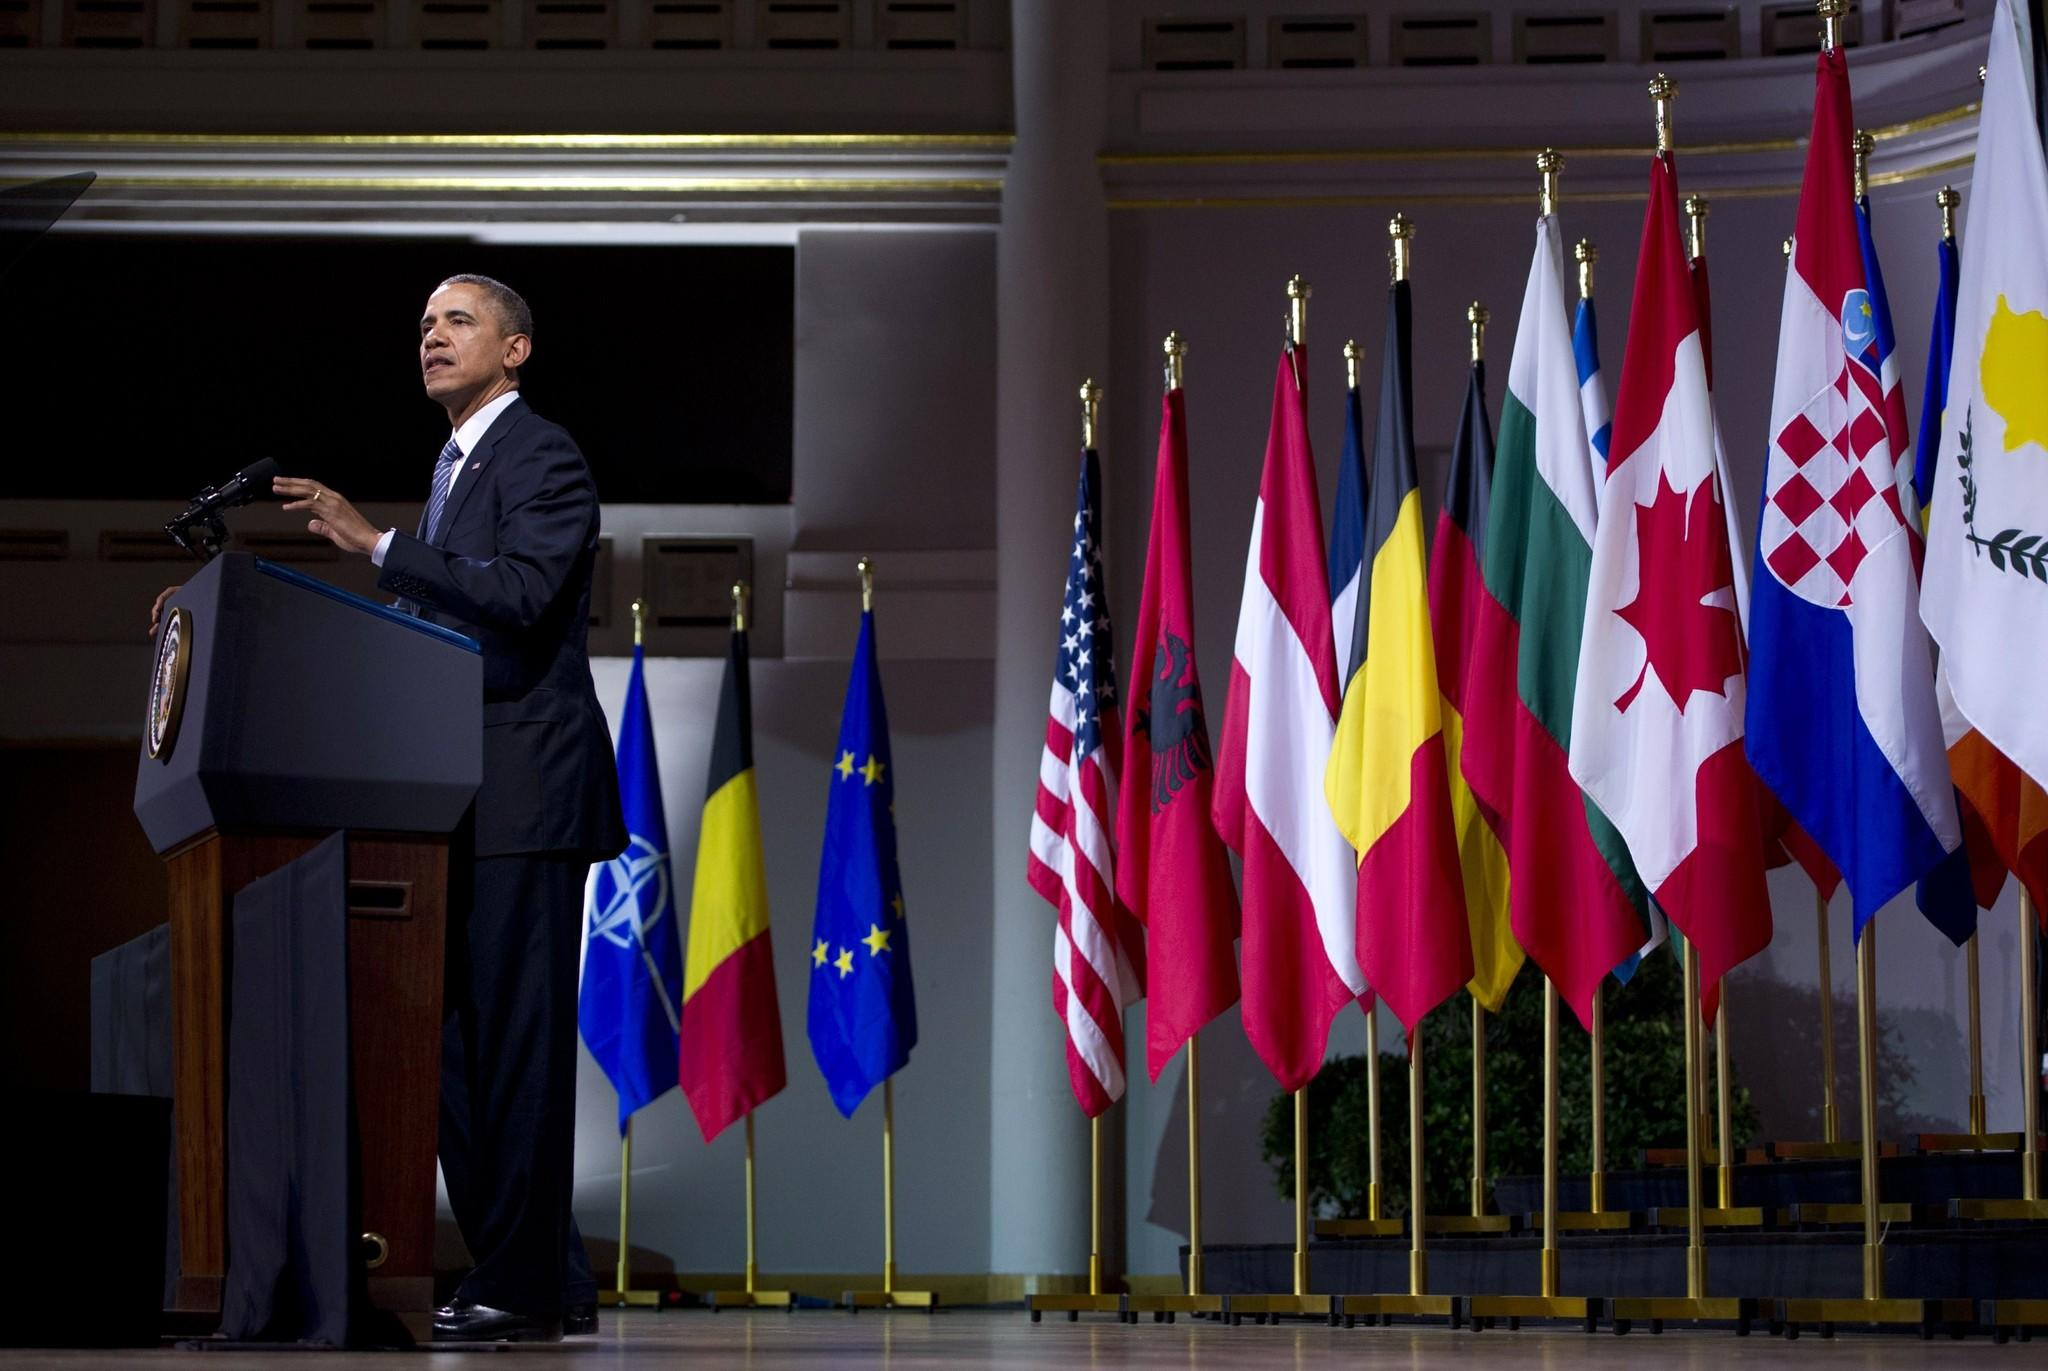 President Obama delivers a speech at the Palais des Beaux-Arts in Brussels.